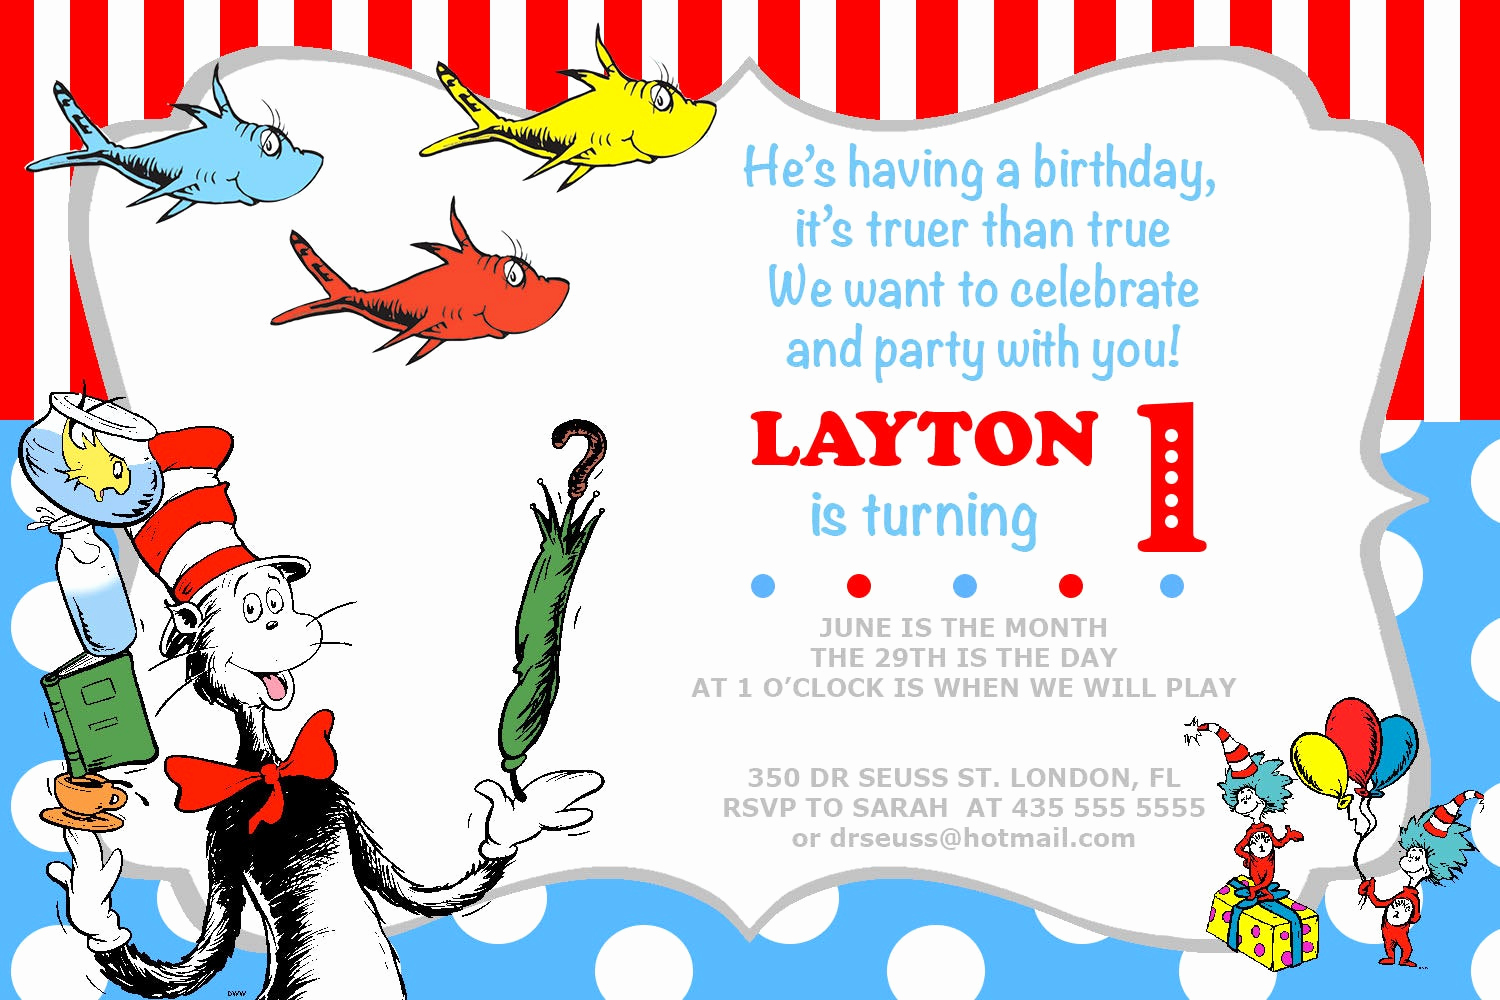 Dr Seuss Birthday Invitation Elegant Dr Seuss Invitation Birthday Party Invites Printable Photo